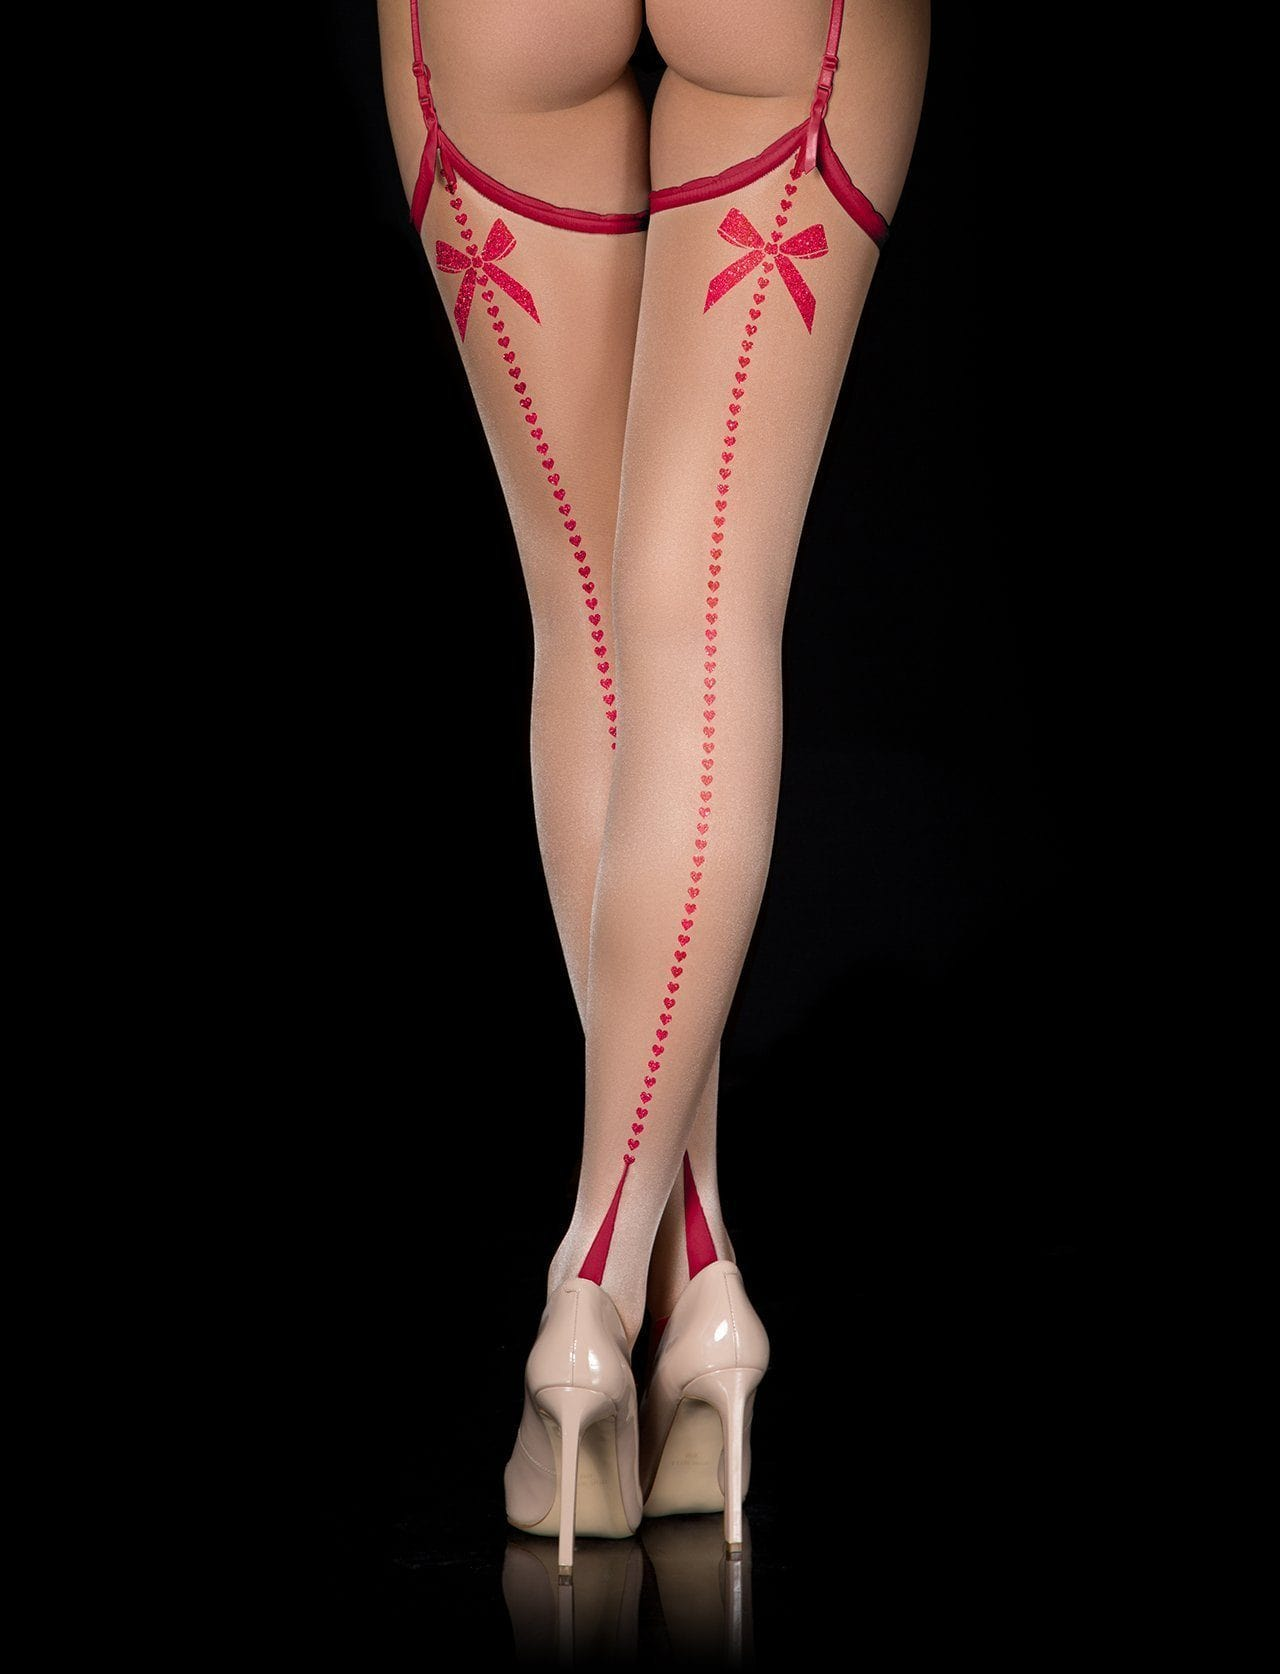 Retro Glitter Stockings - Shop Hosiery | Honey Birdette UK